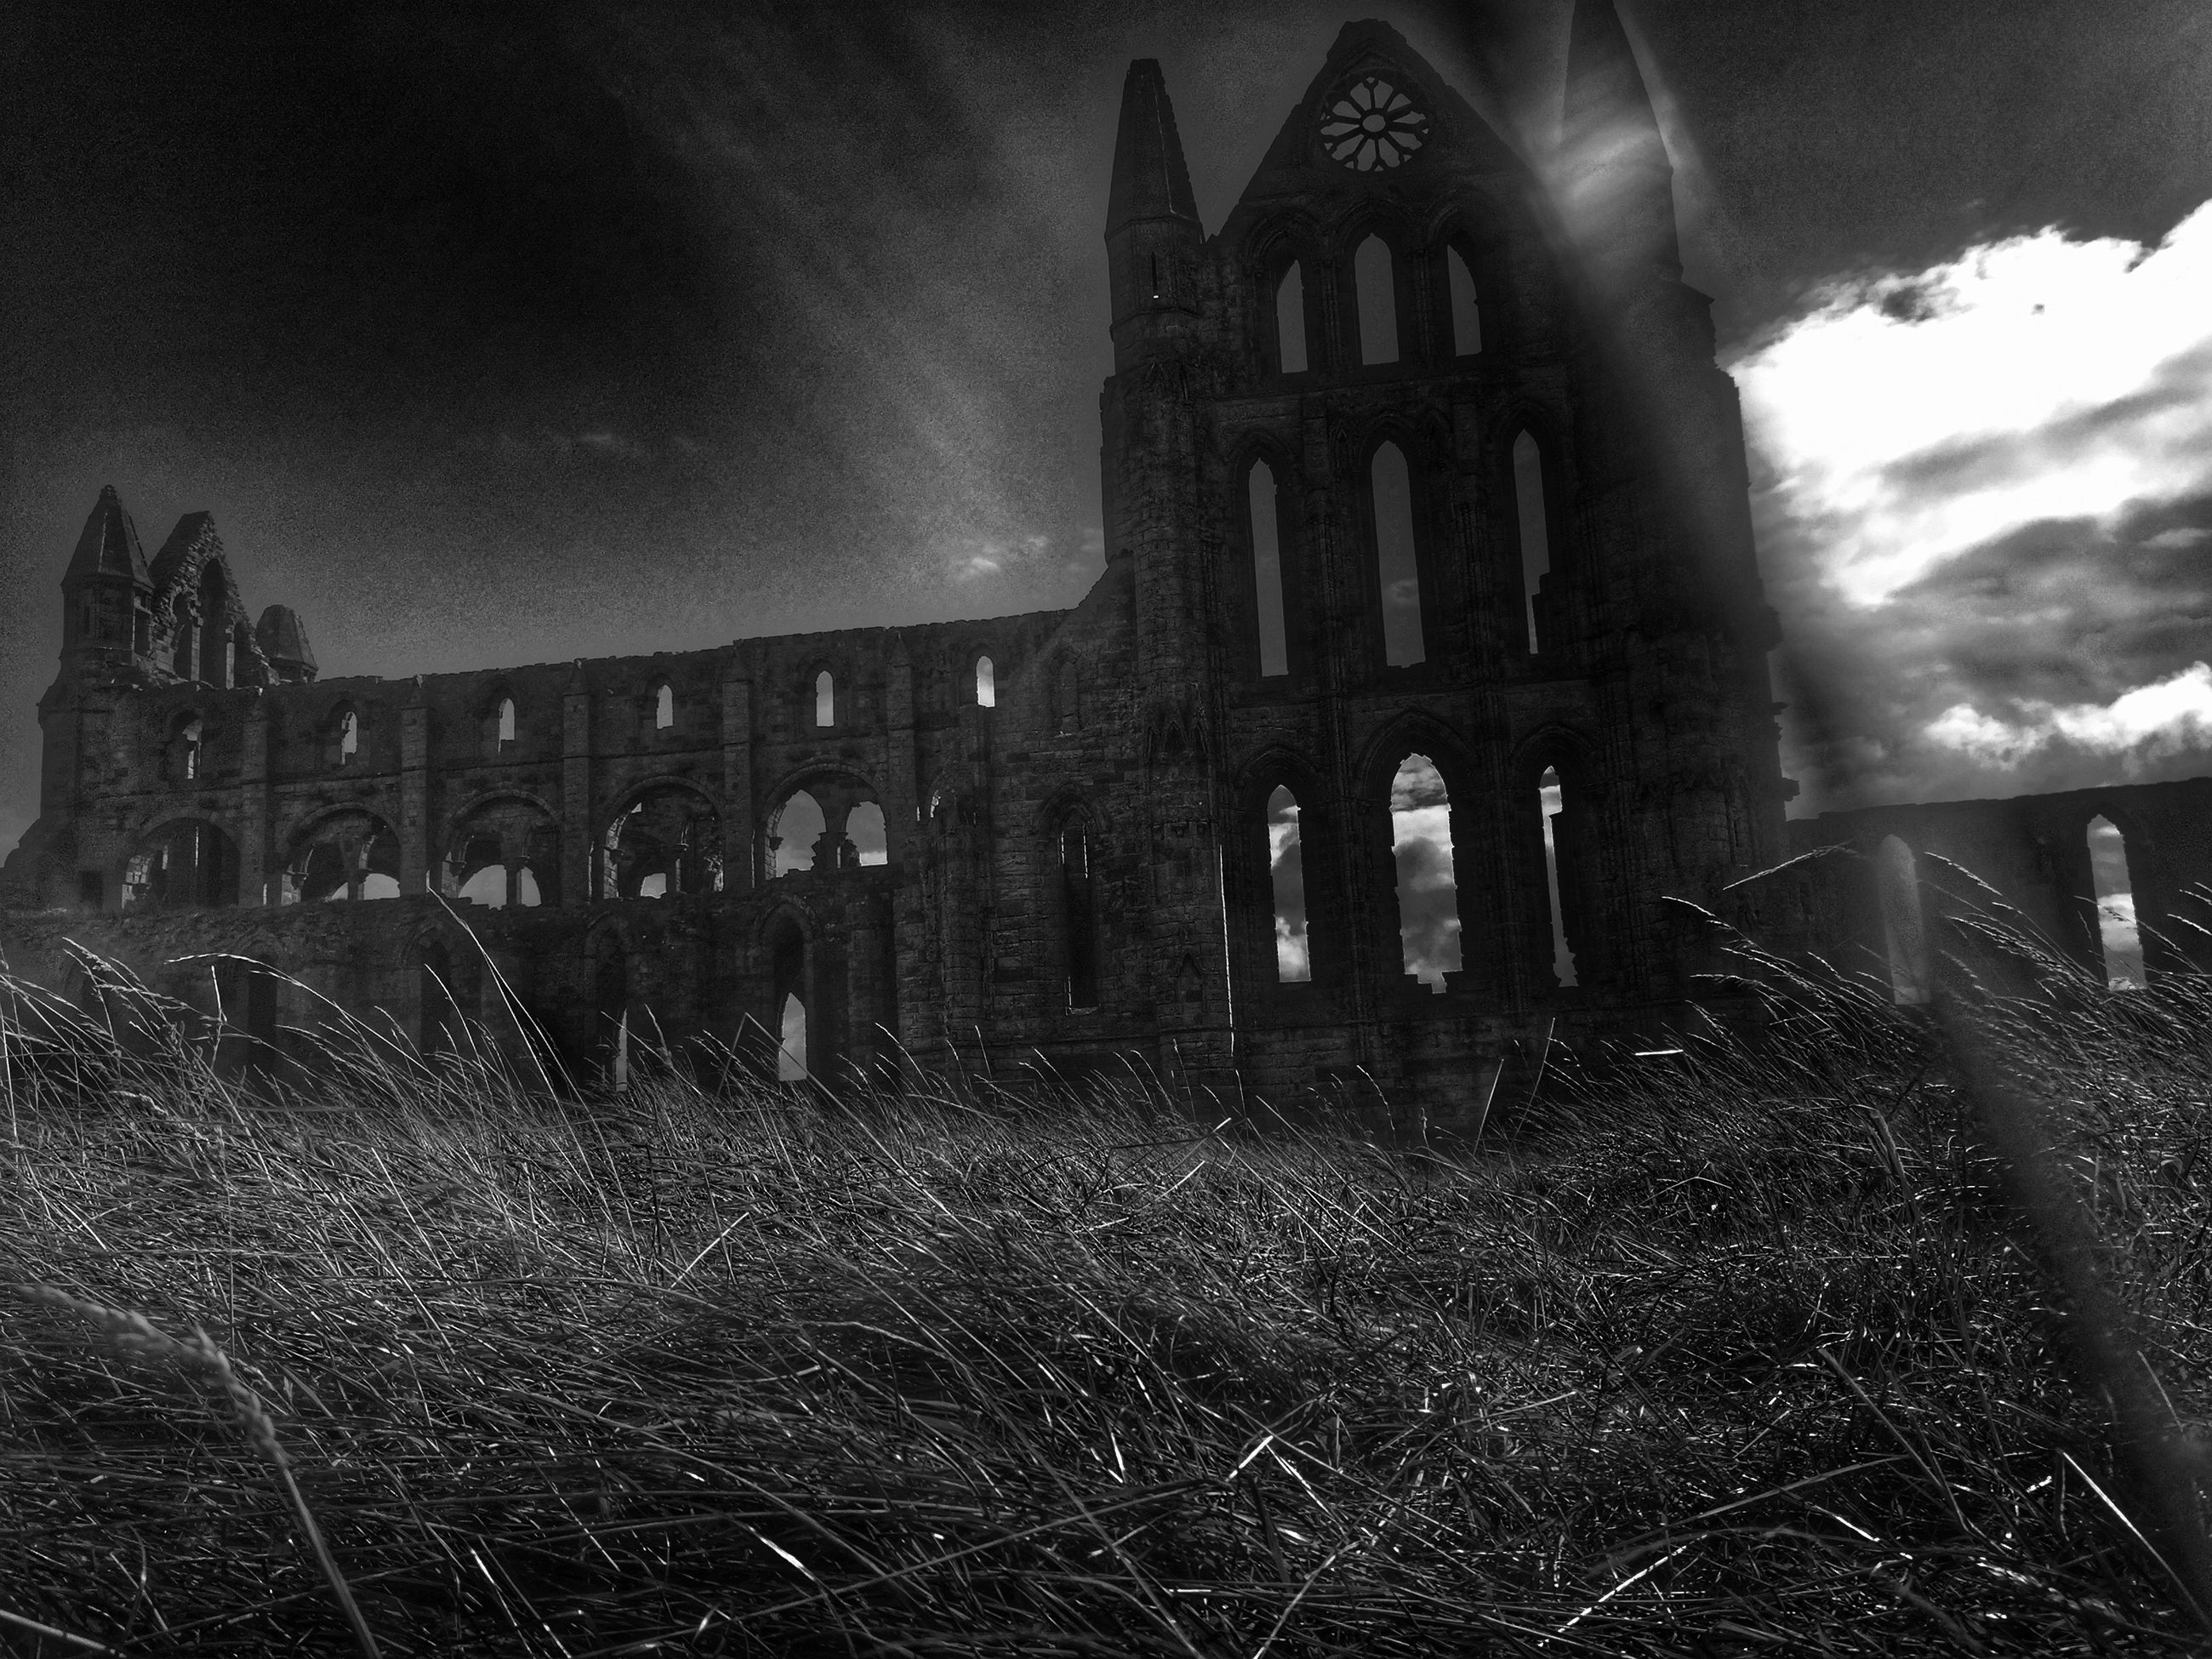 architecture, built structure, building exterior, religion, church, place of worship, sky, facade, outdoors, lawn, dark, history, no people, chapel, exterior, local landmark